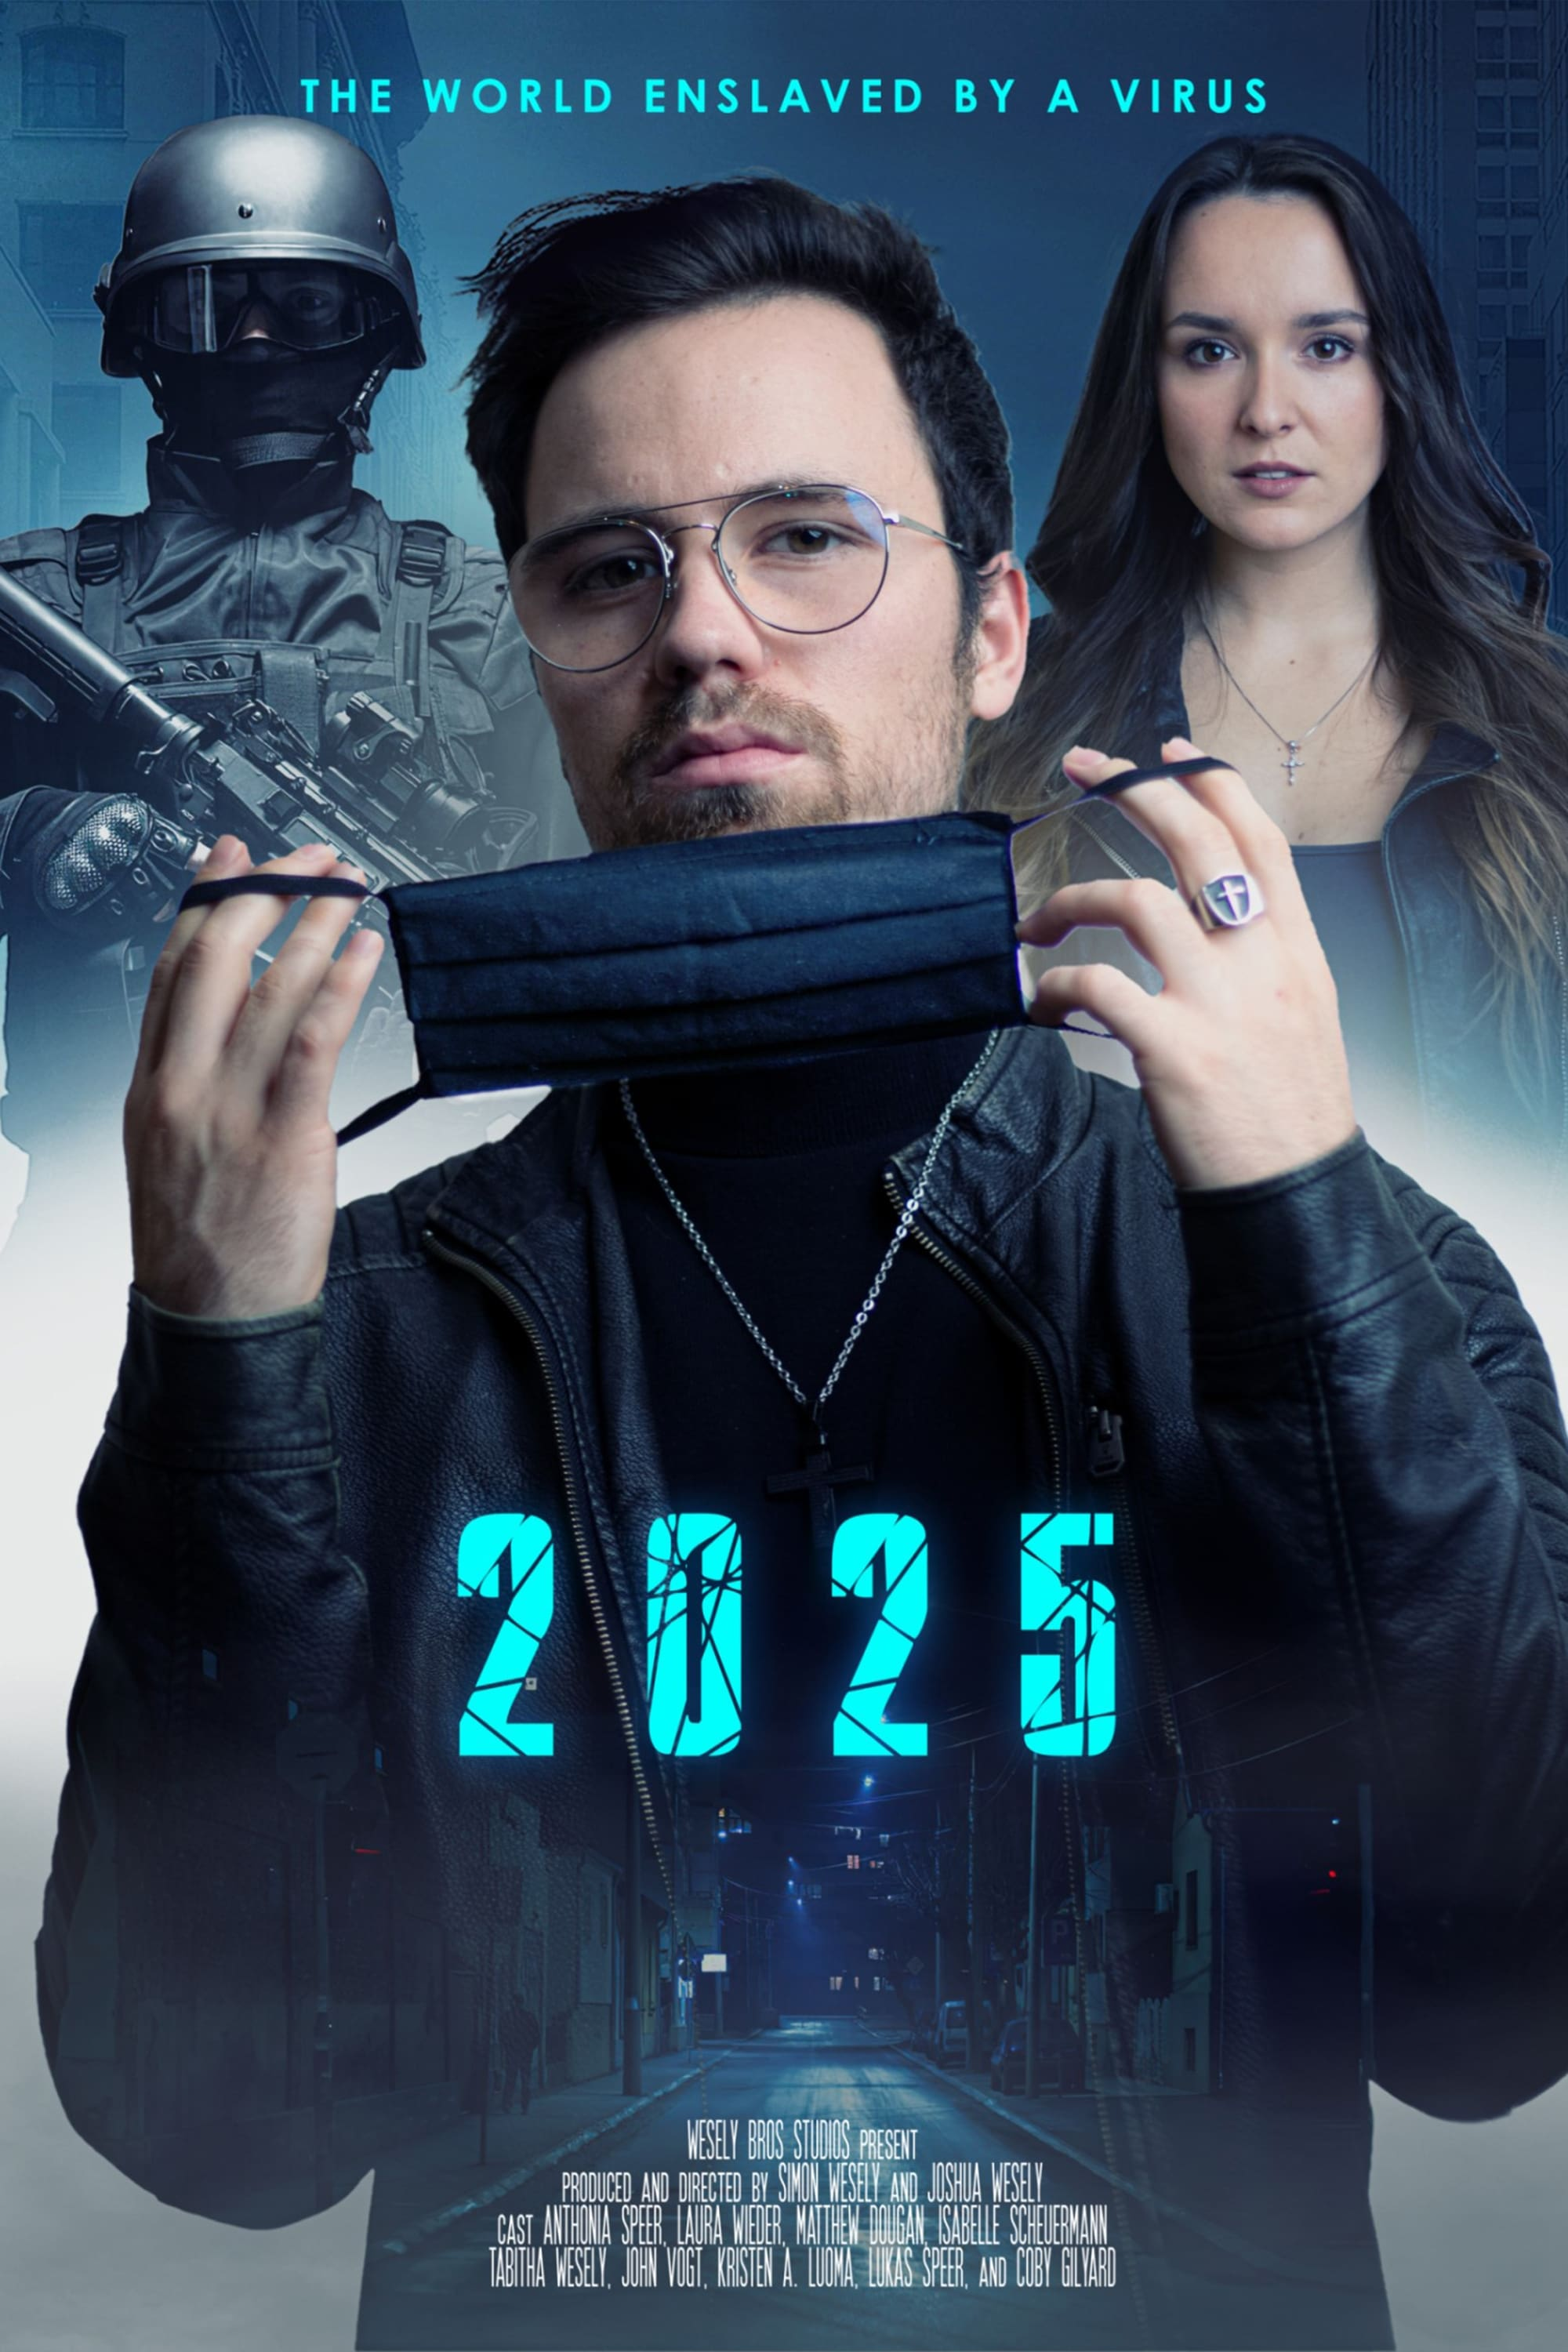 2025 - The World enslaved by a Virus on FREECABLE TV